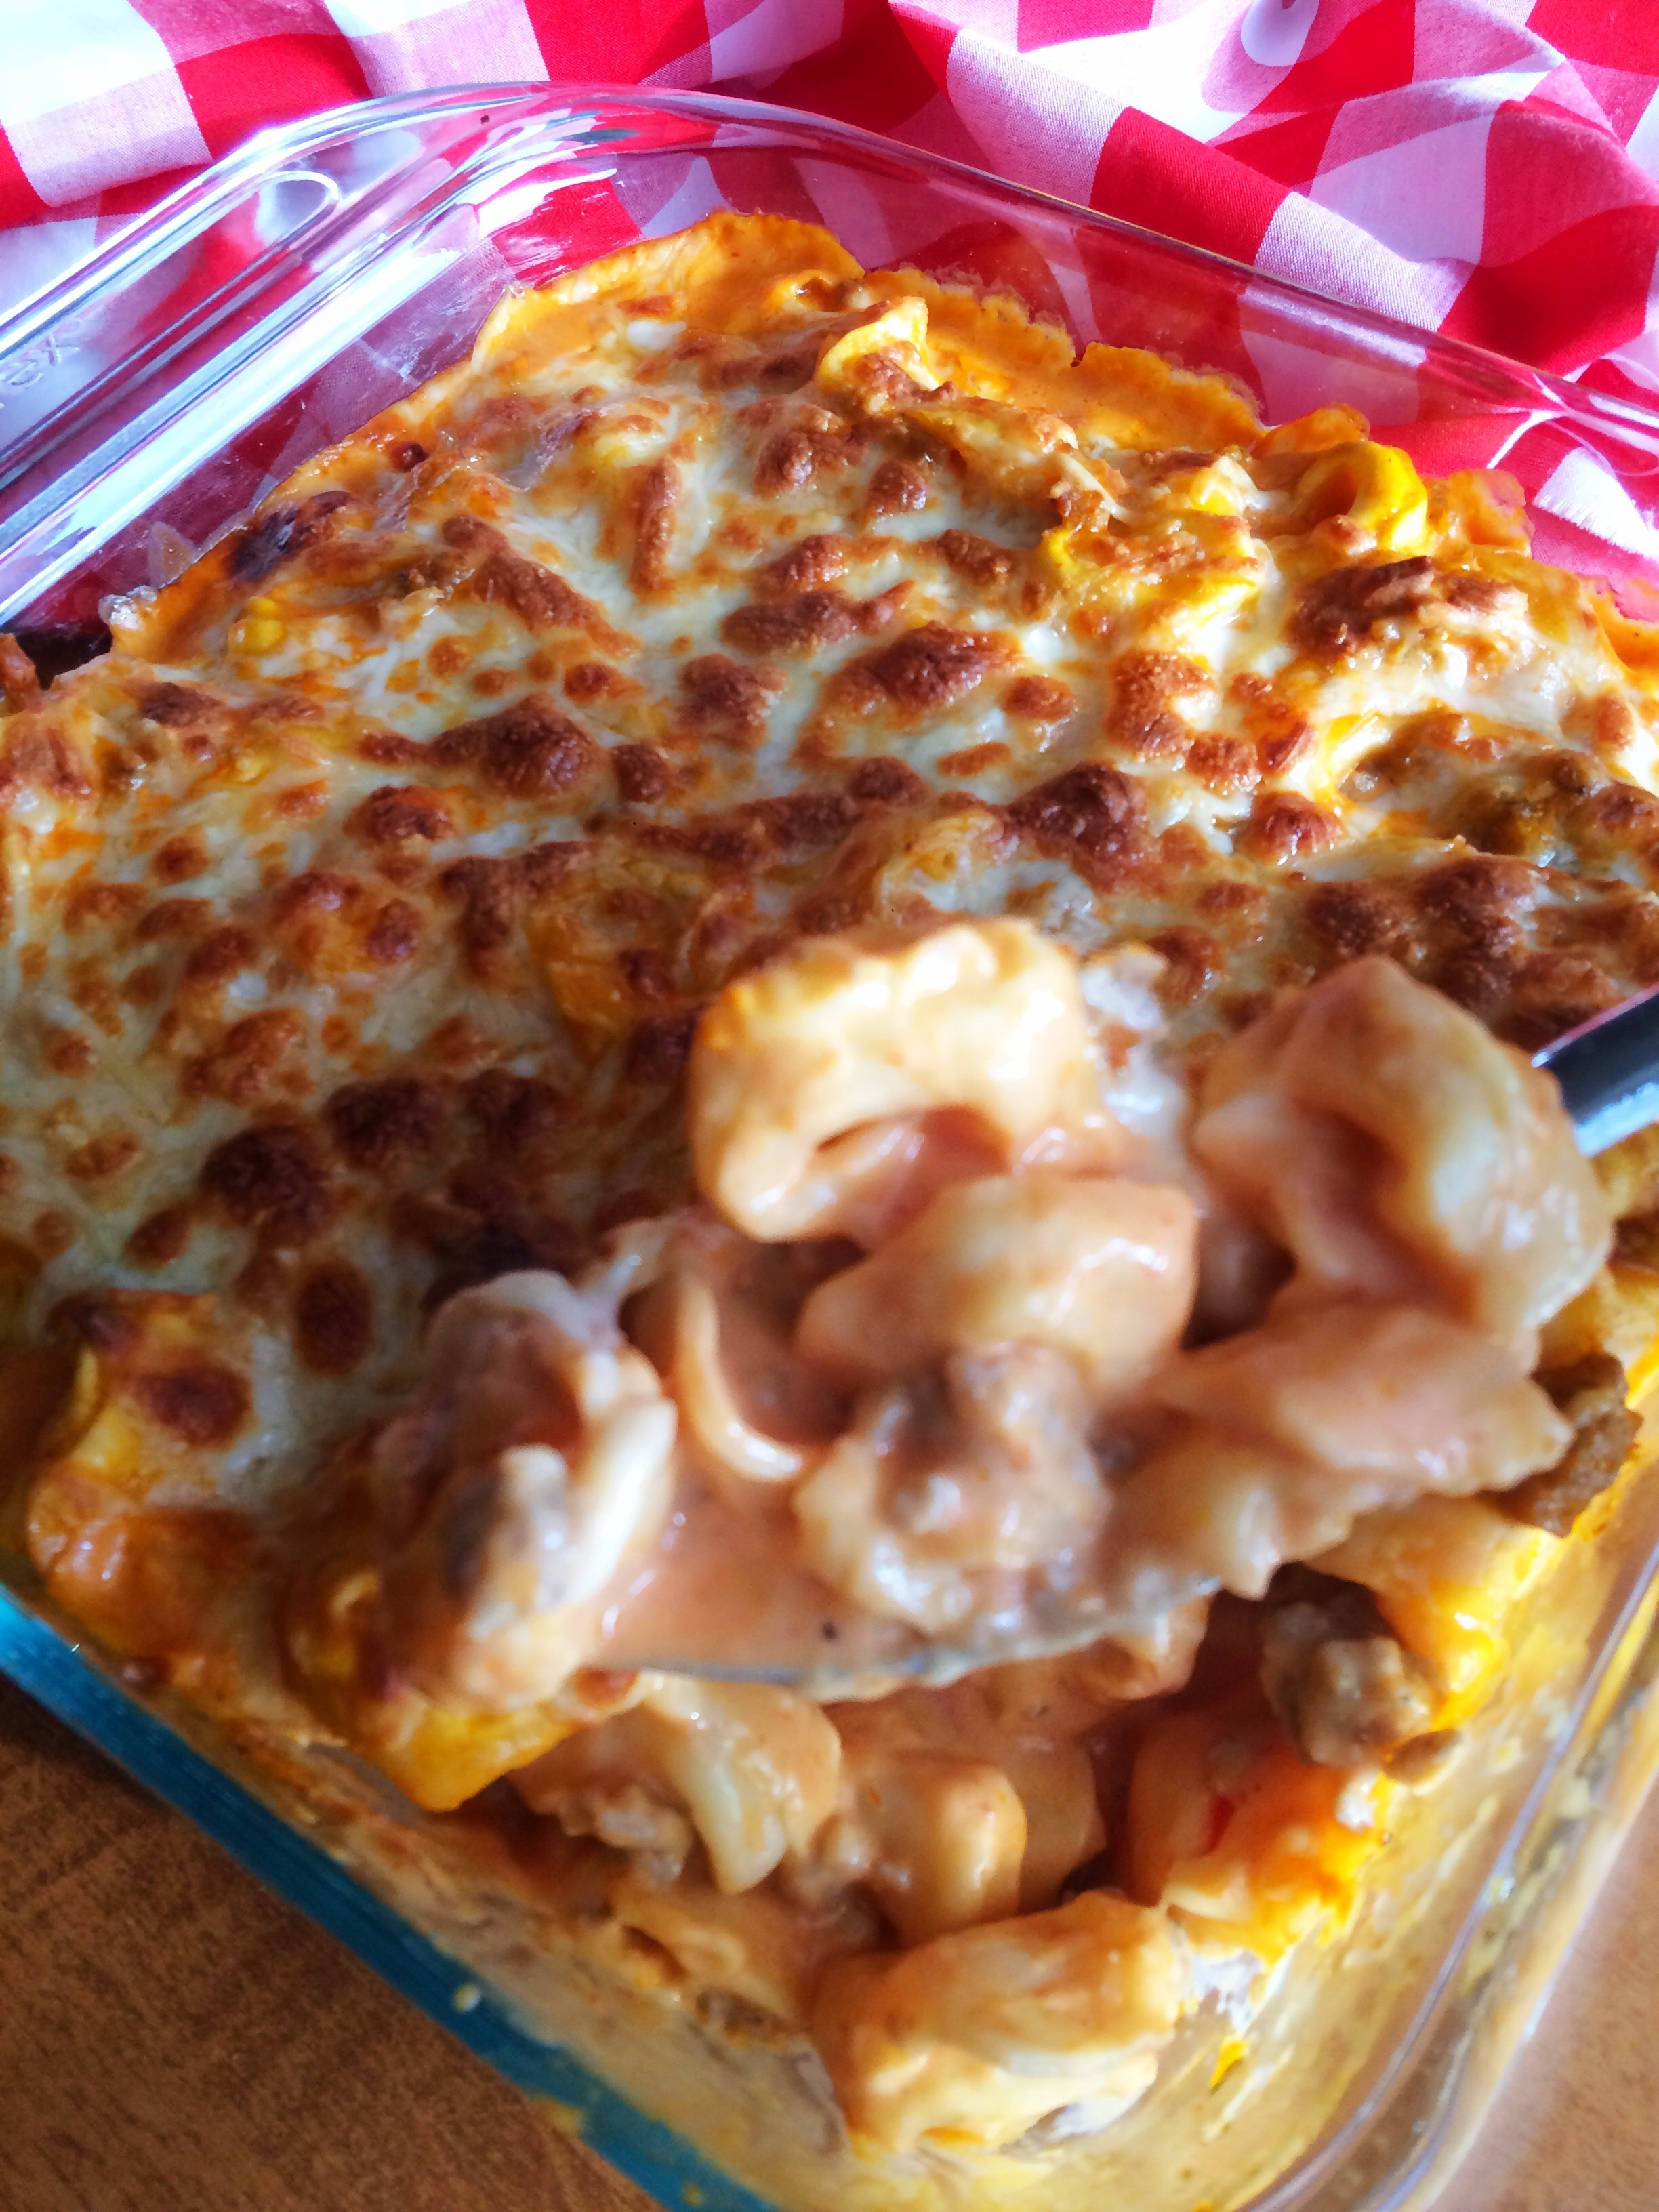 Sausage and cheese tortellni bake